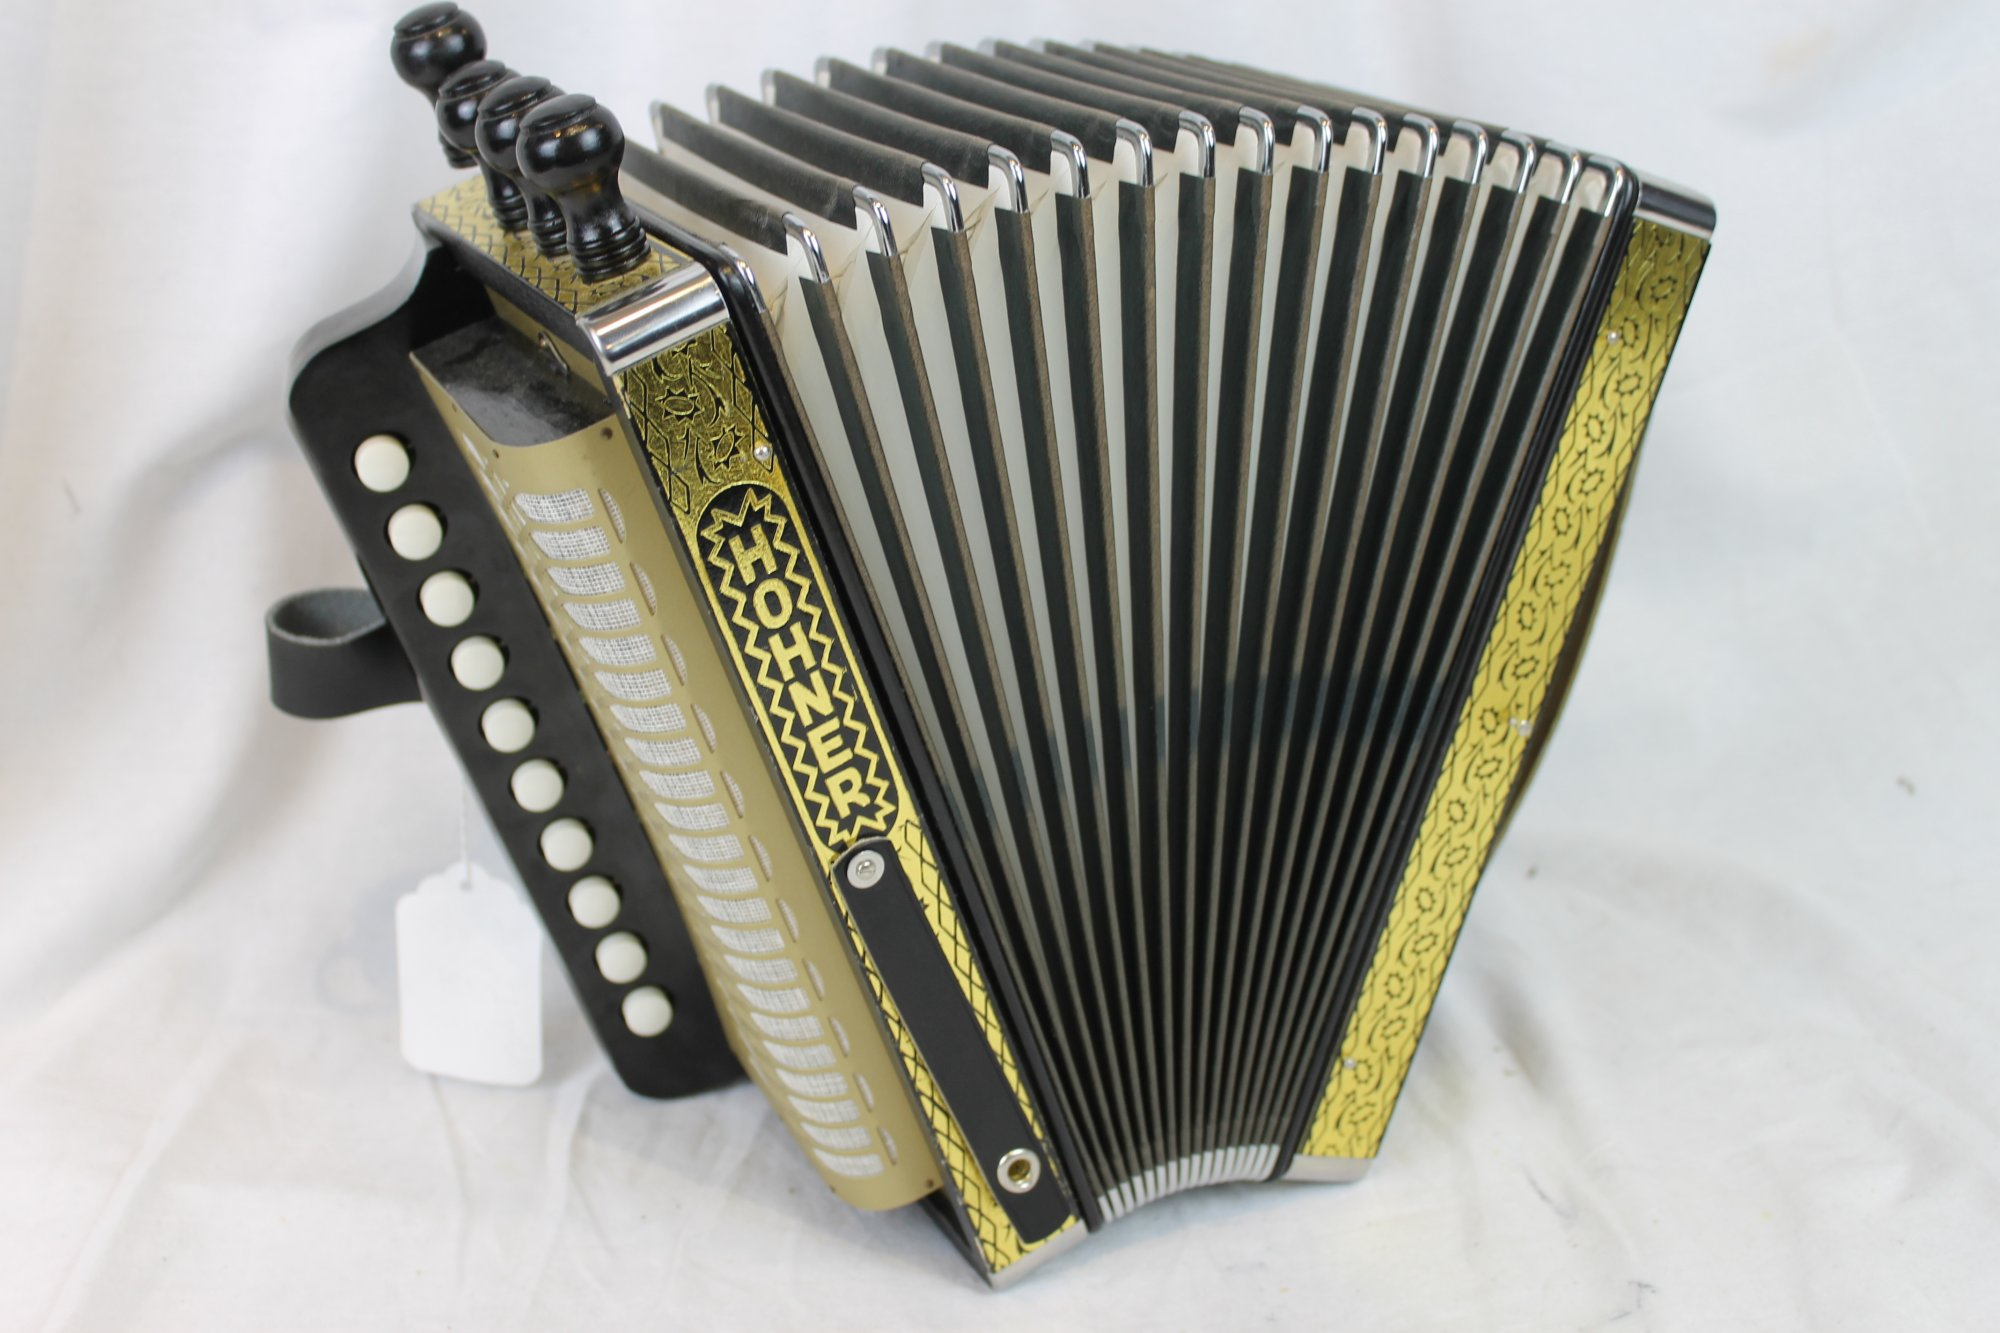 NEW Black Gold Hohner HA-114 Cajun Diatonic Button Accordion Key of C LMMH 10 2